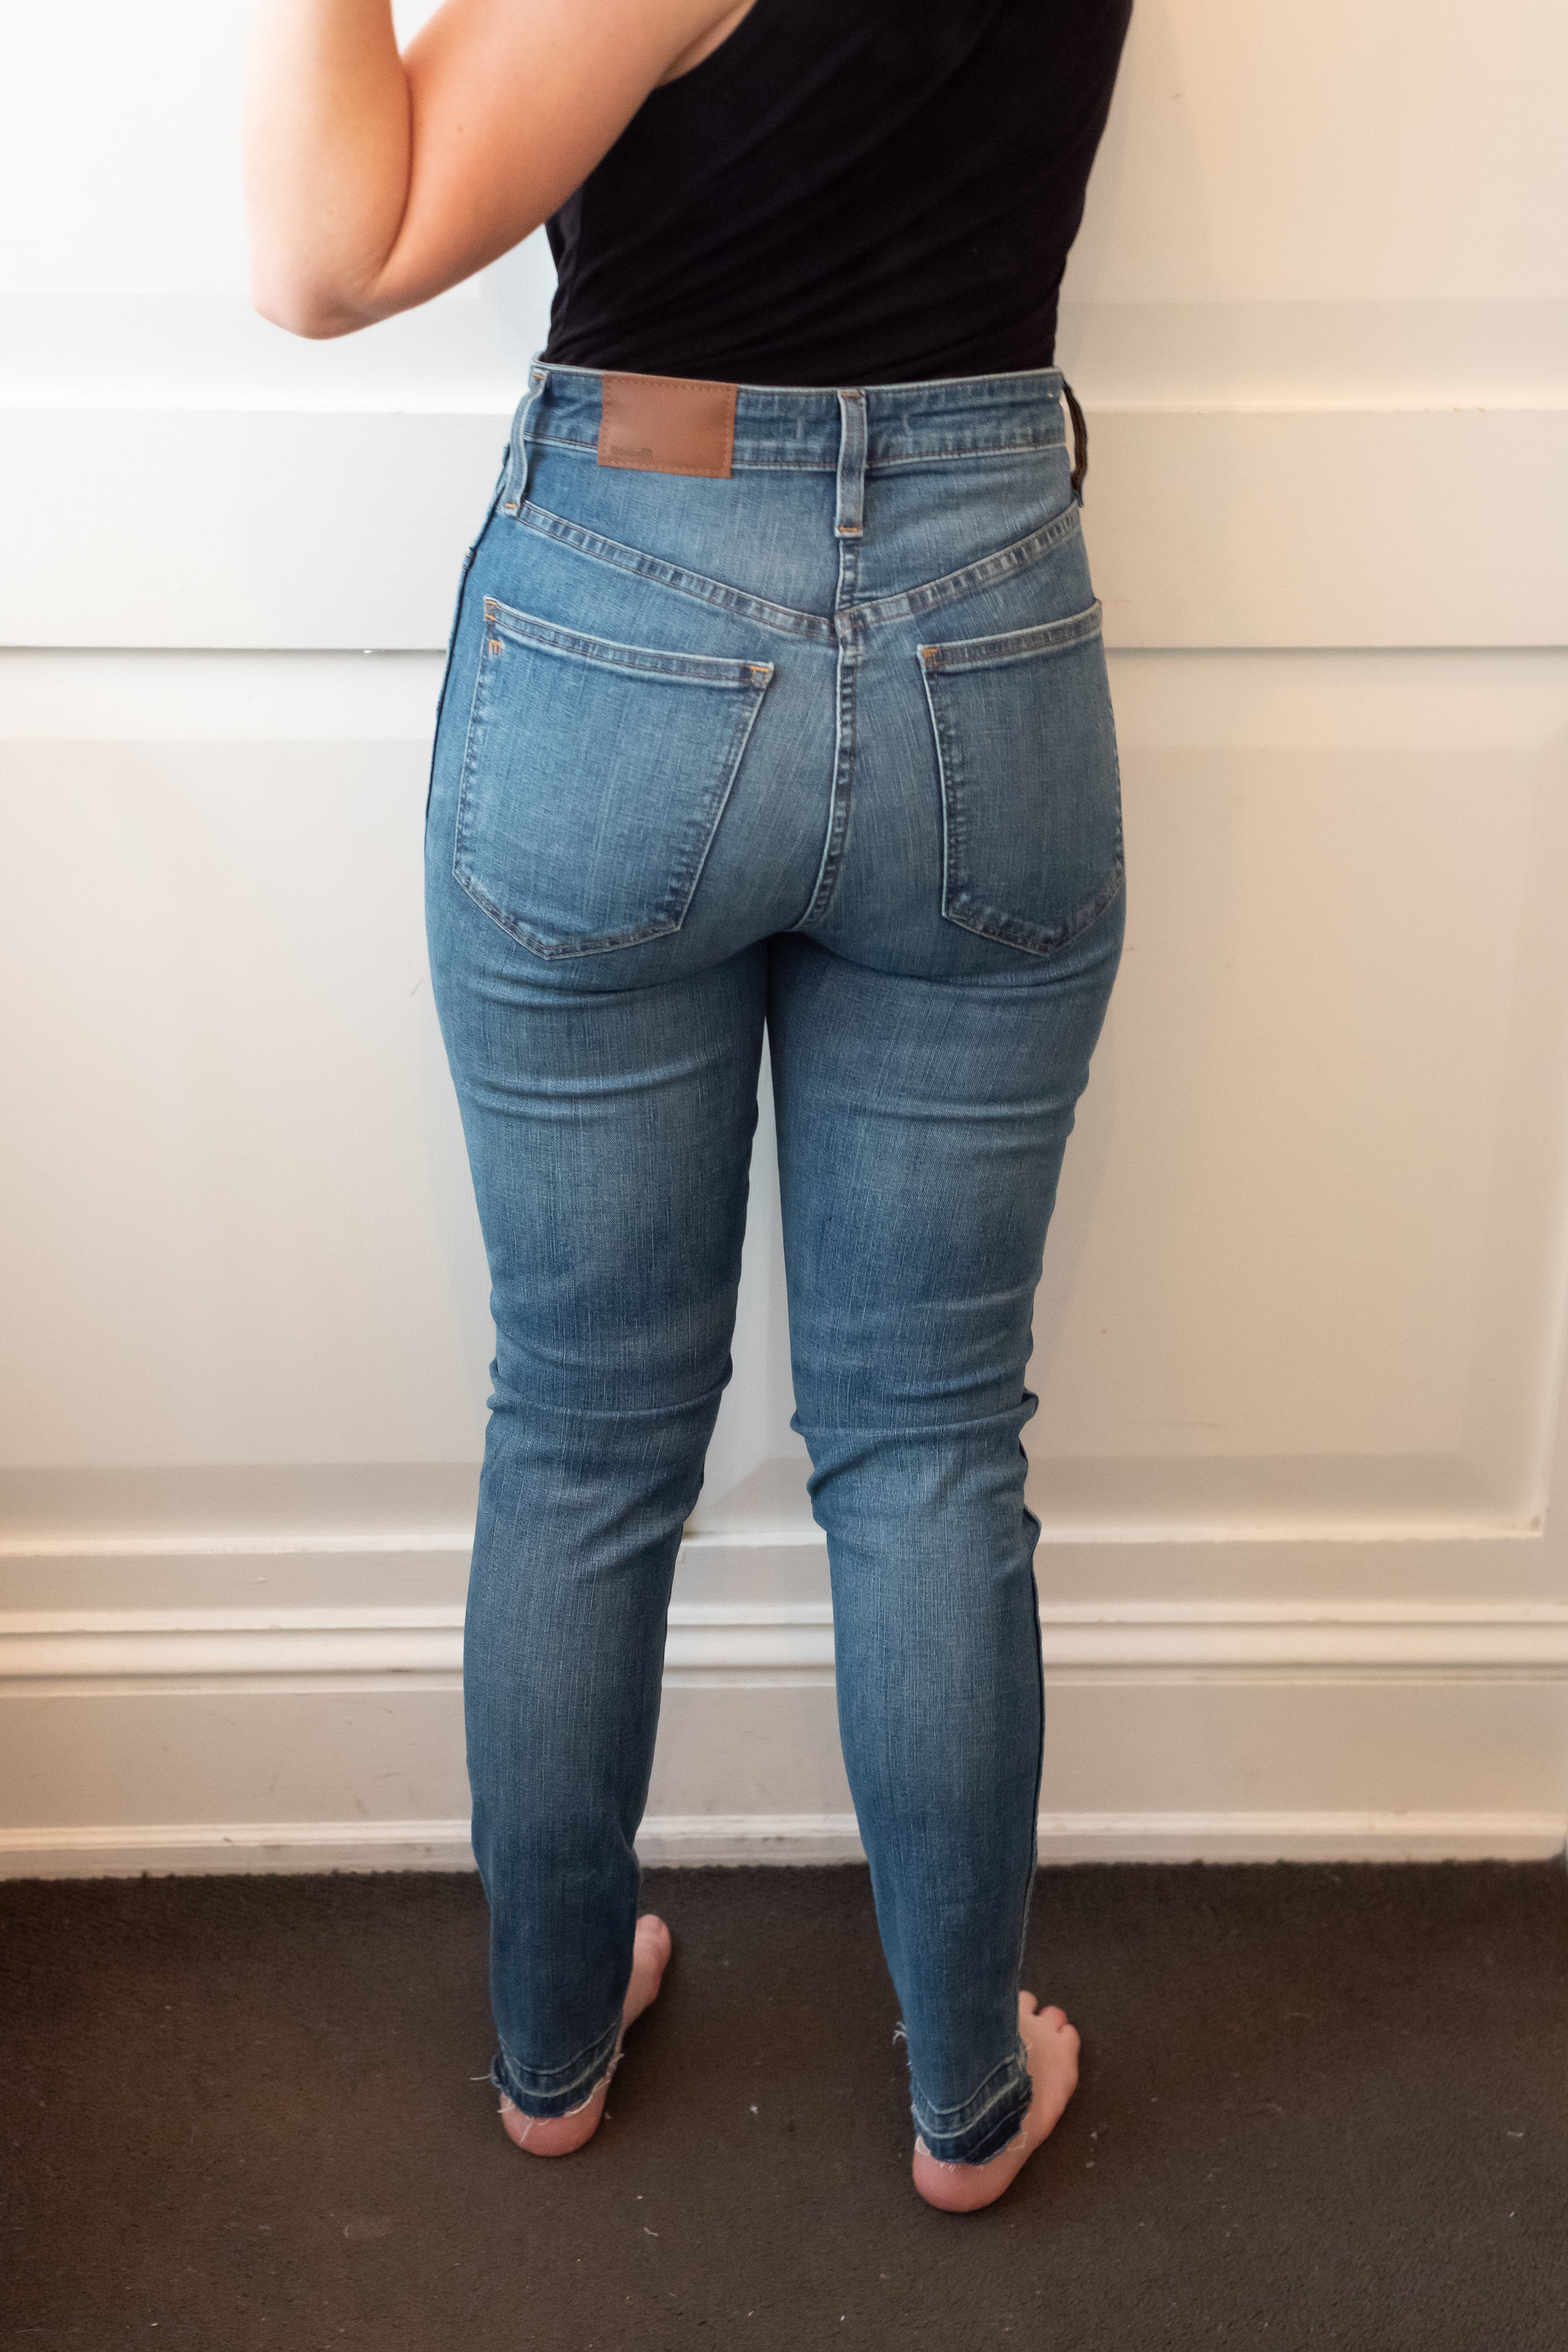 Madewell Curvy High Rise Skinny Jeans - Size 28 - Back View